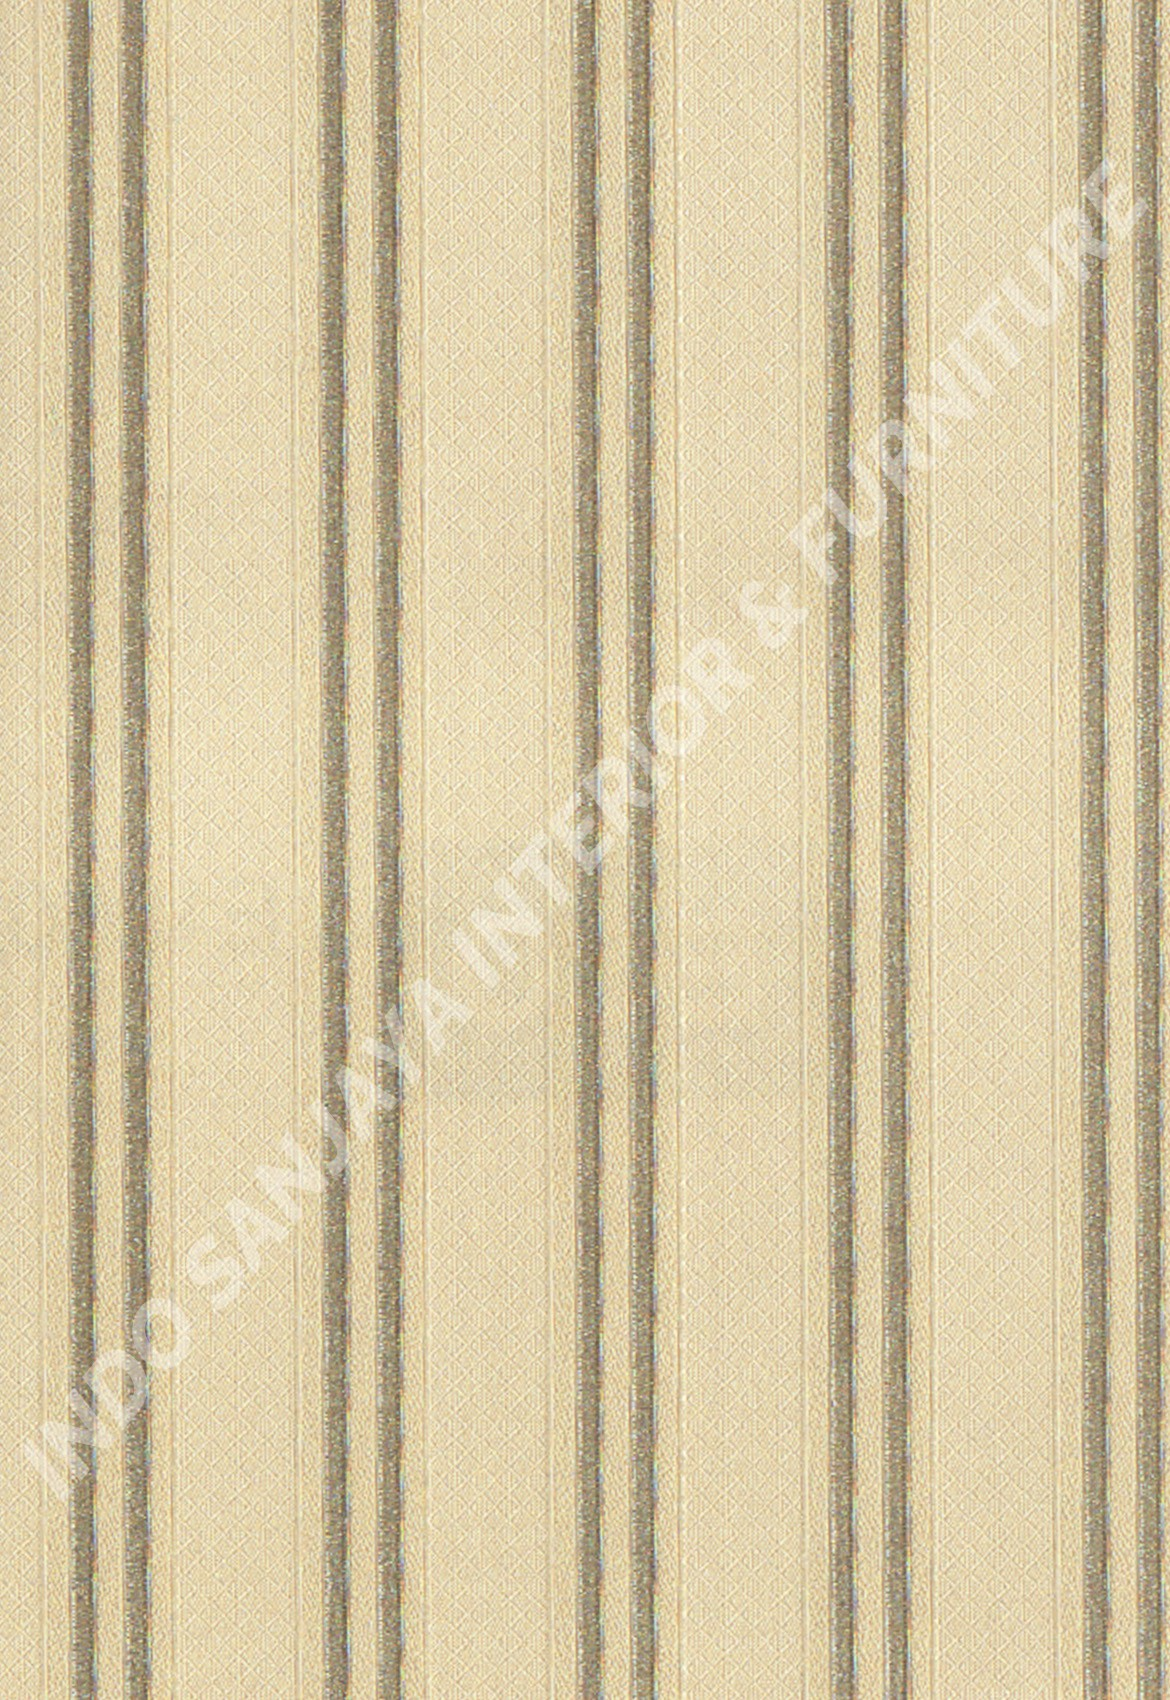 wallpaper   Wallpaper Garis E10502:E10502 corak  warna